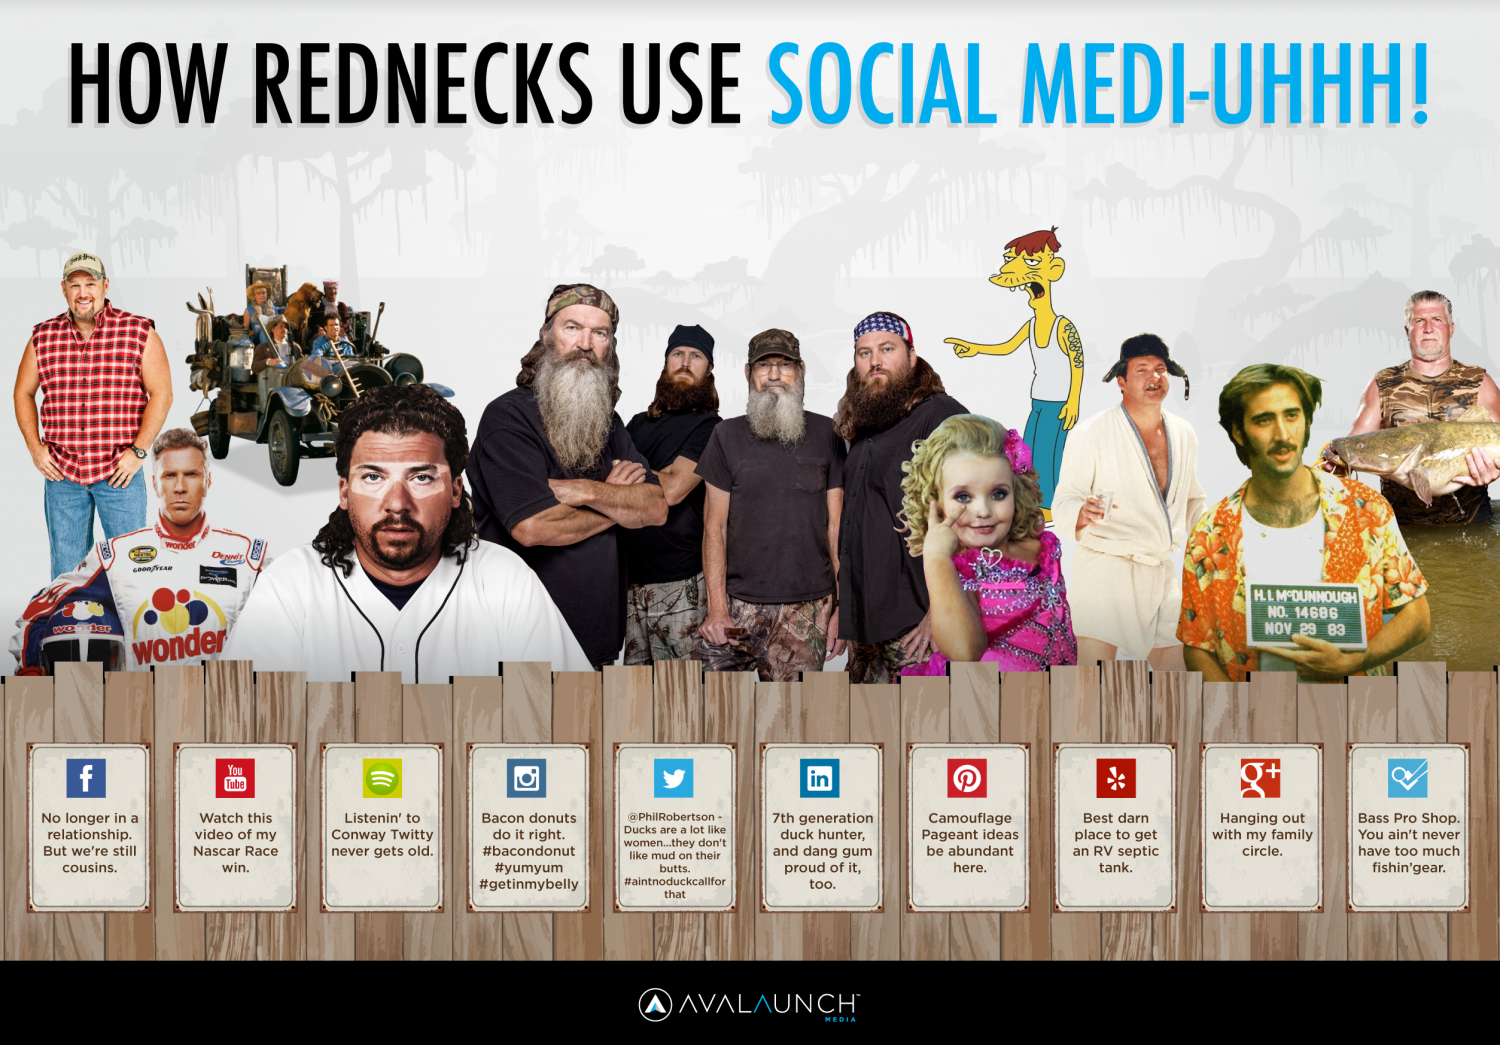 How Rednecks Use Social Media Infographic